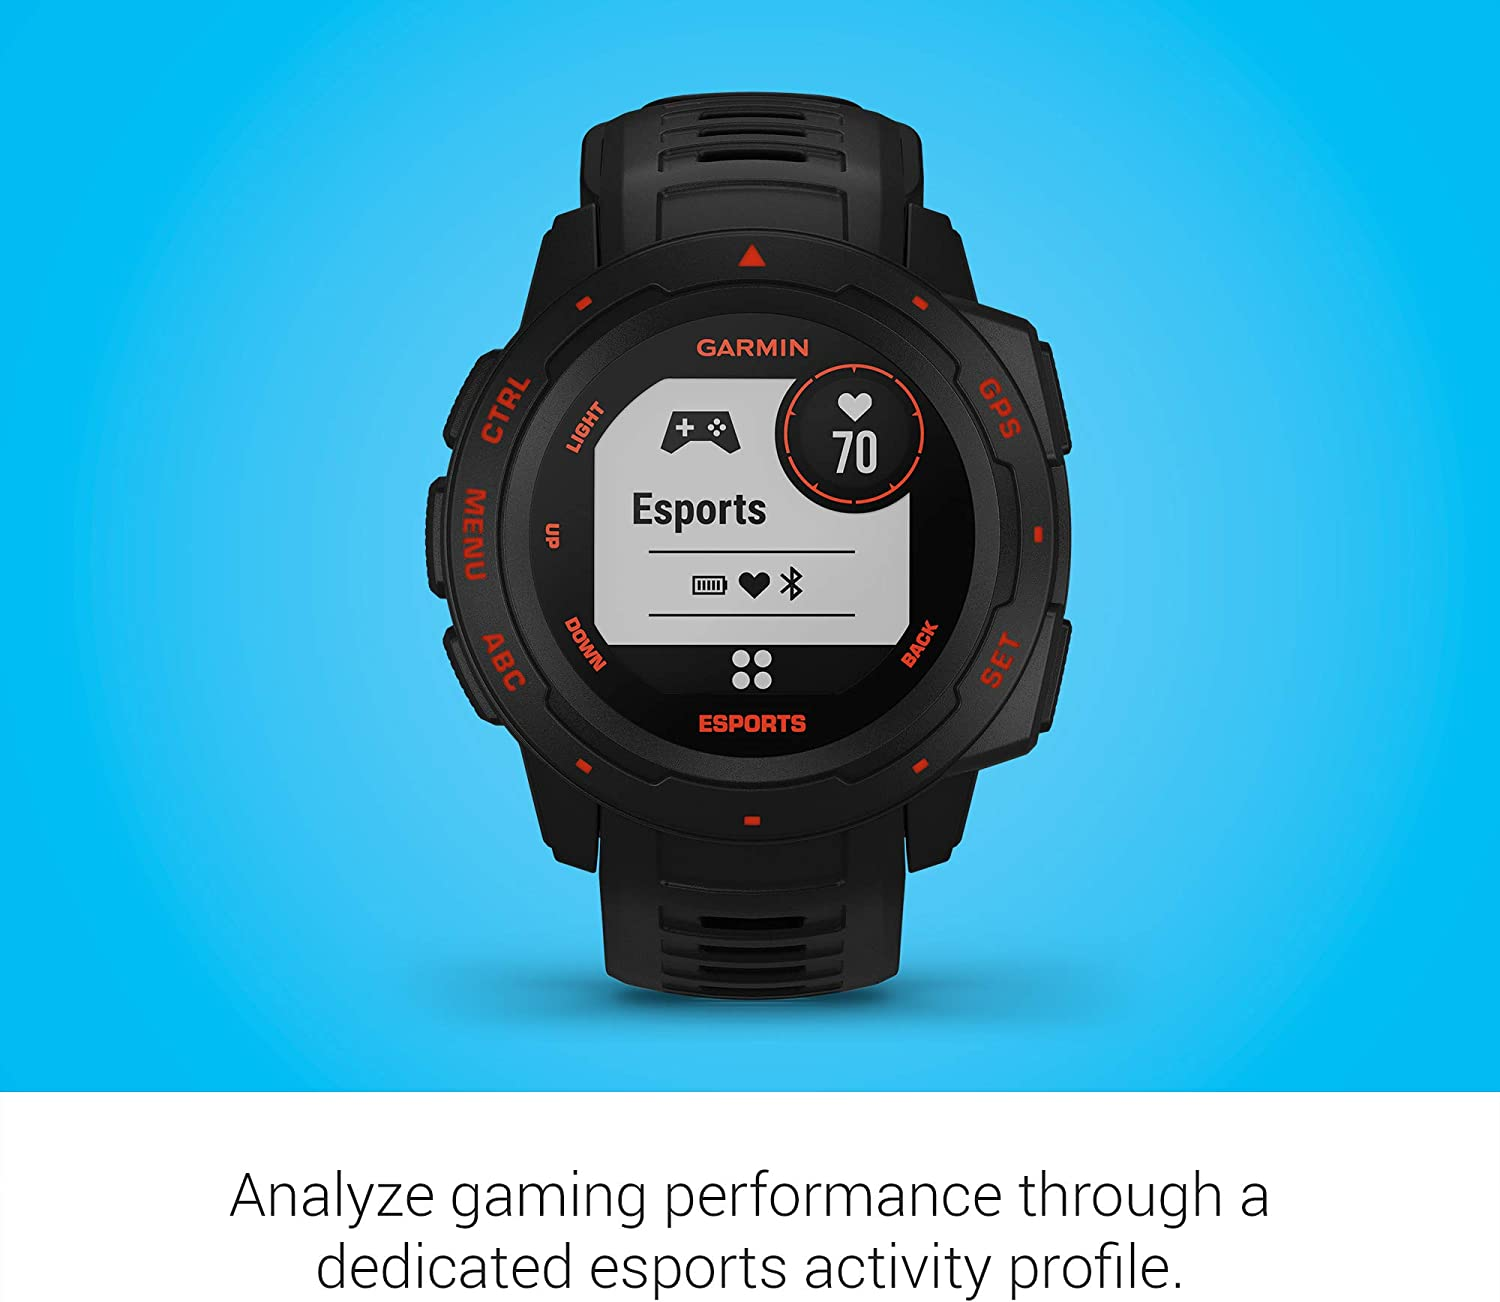 GPS Gaming Smartwatch with Esports Activity Profile Garmin Instinct Esports Edition Broadcast Your Stress Level and Heart Rate to Game Streams via Str3AMUP!